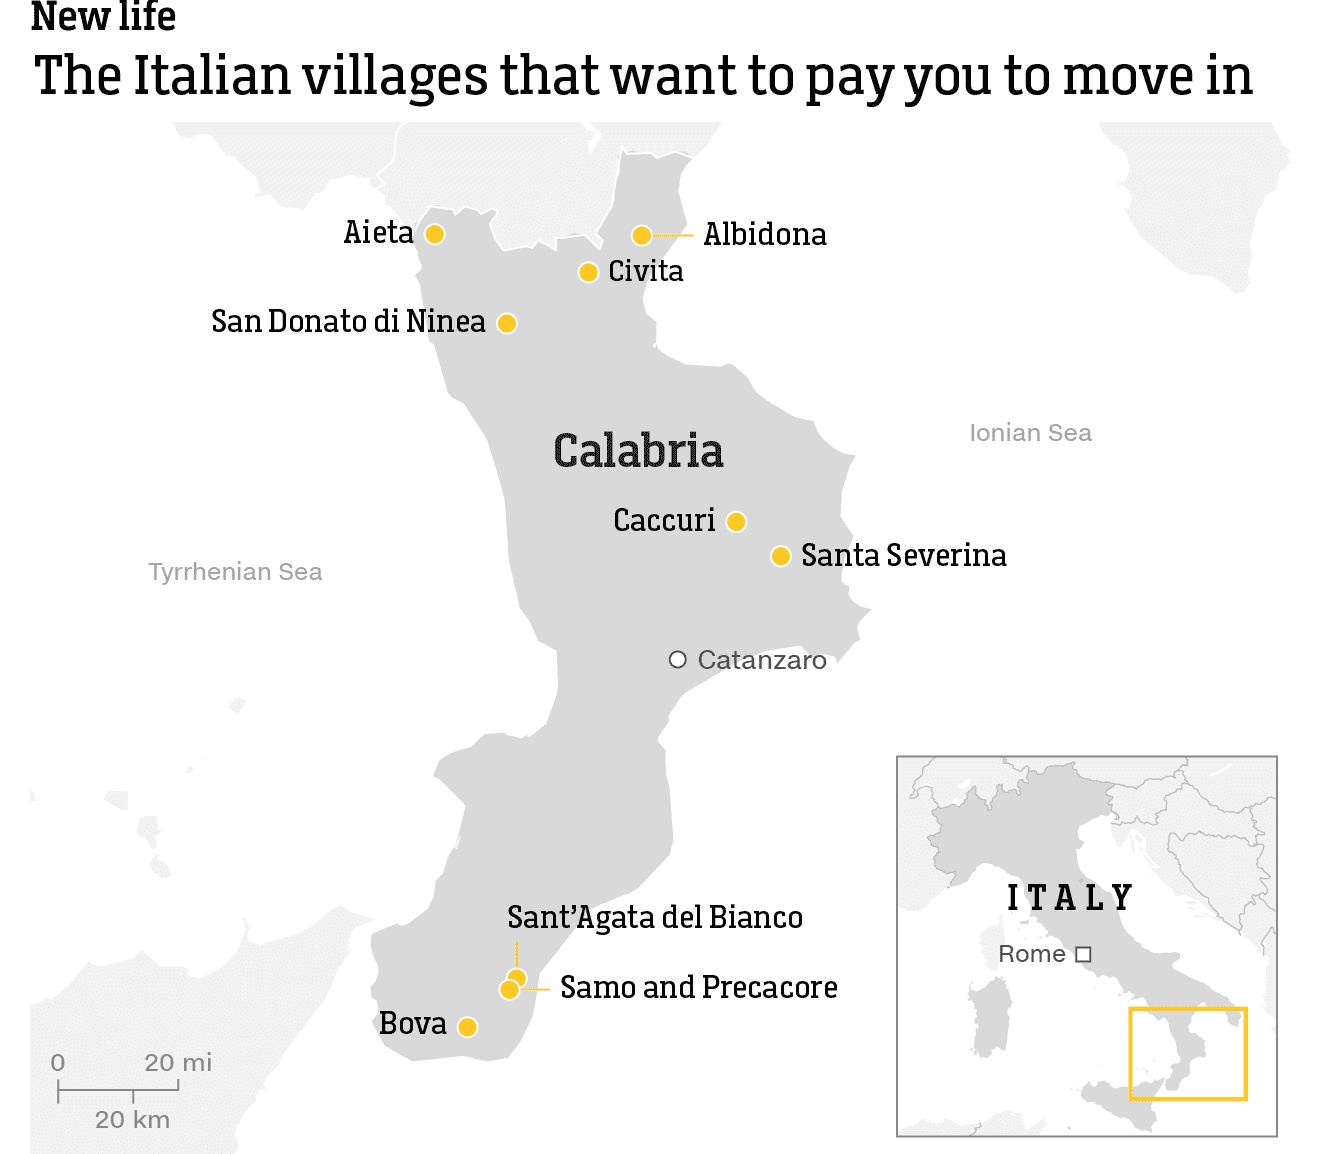 calabria italy offer 2021